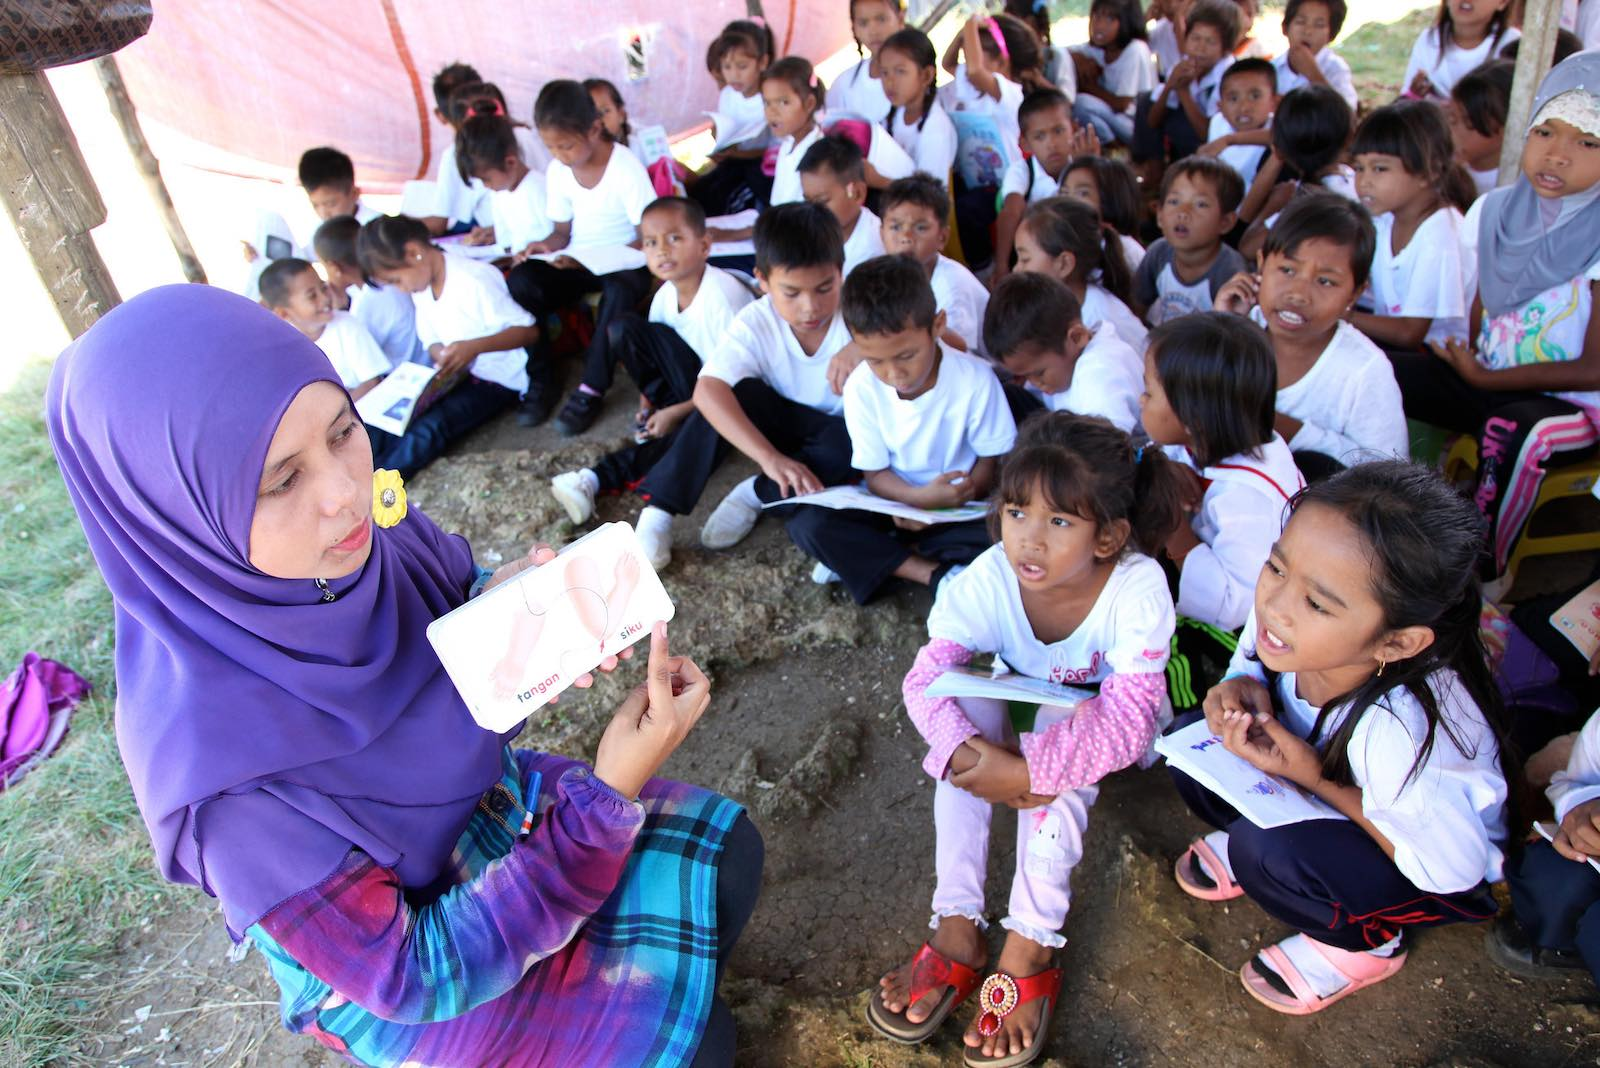 Without documents, children of the Bajau Laut community in Sabah, East Malaysia, cannot attend school (Photo: PKPKM Lahad Datu and Semporna/Flickr)